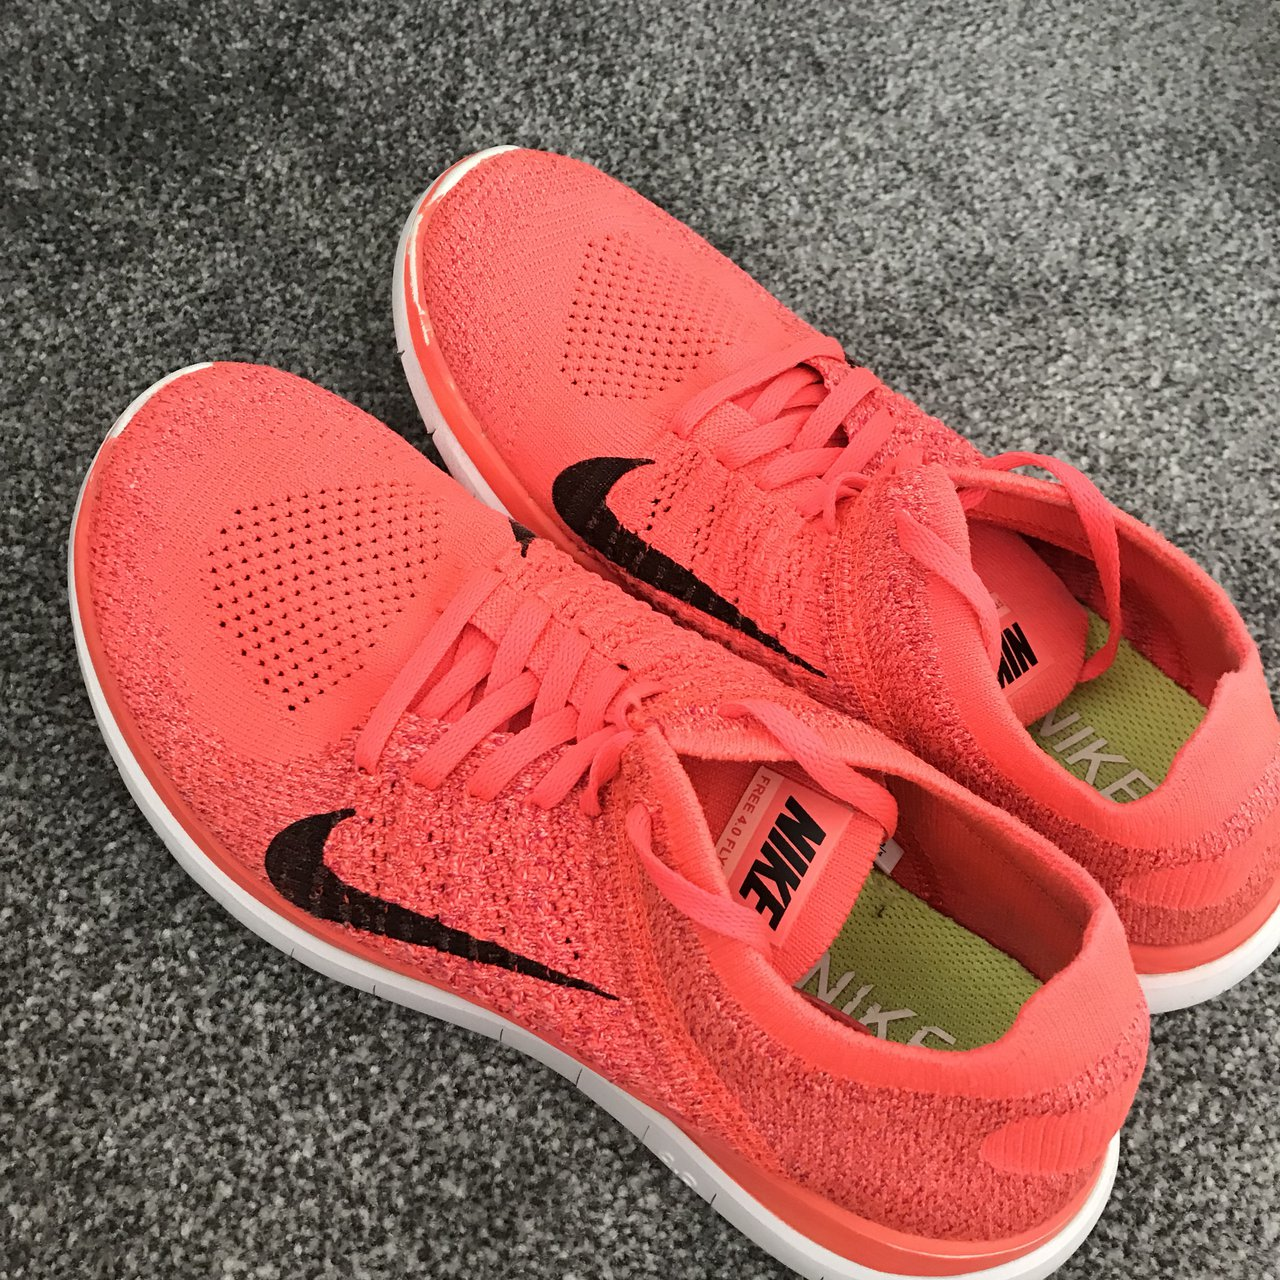 36936be70c0e Bright pink Nike Flyknit trainers